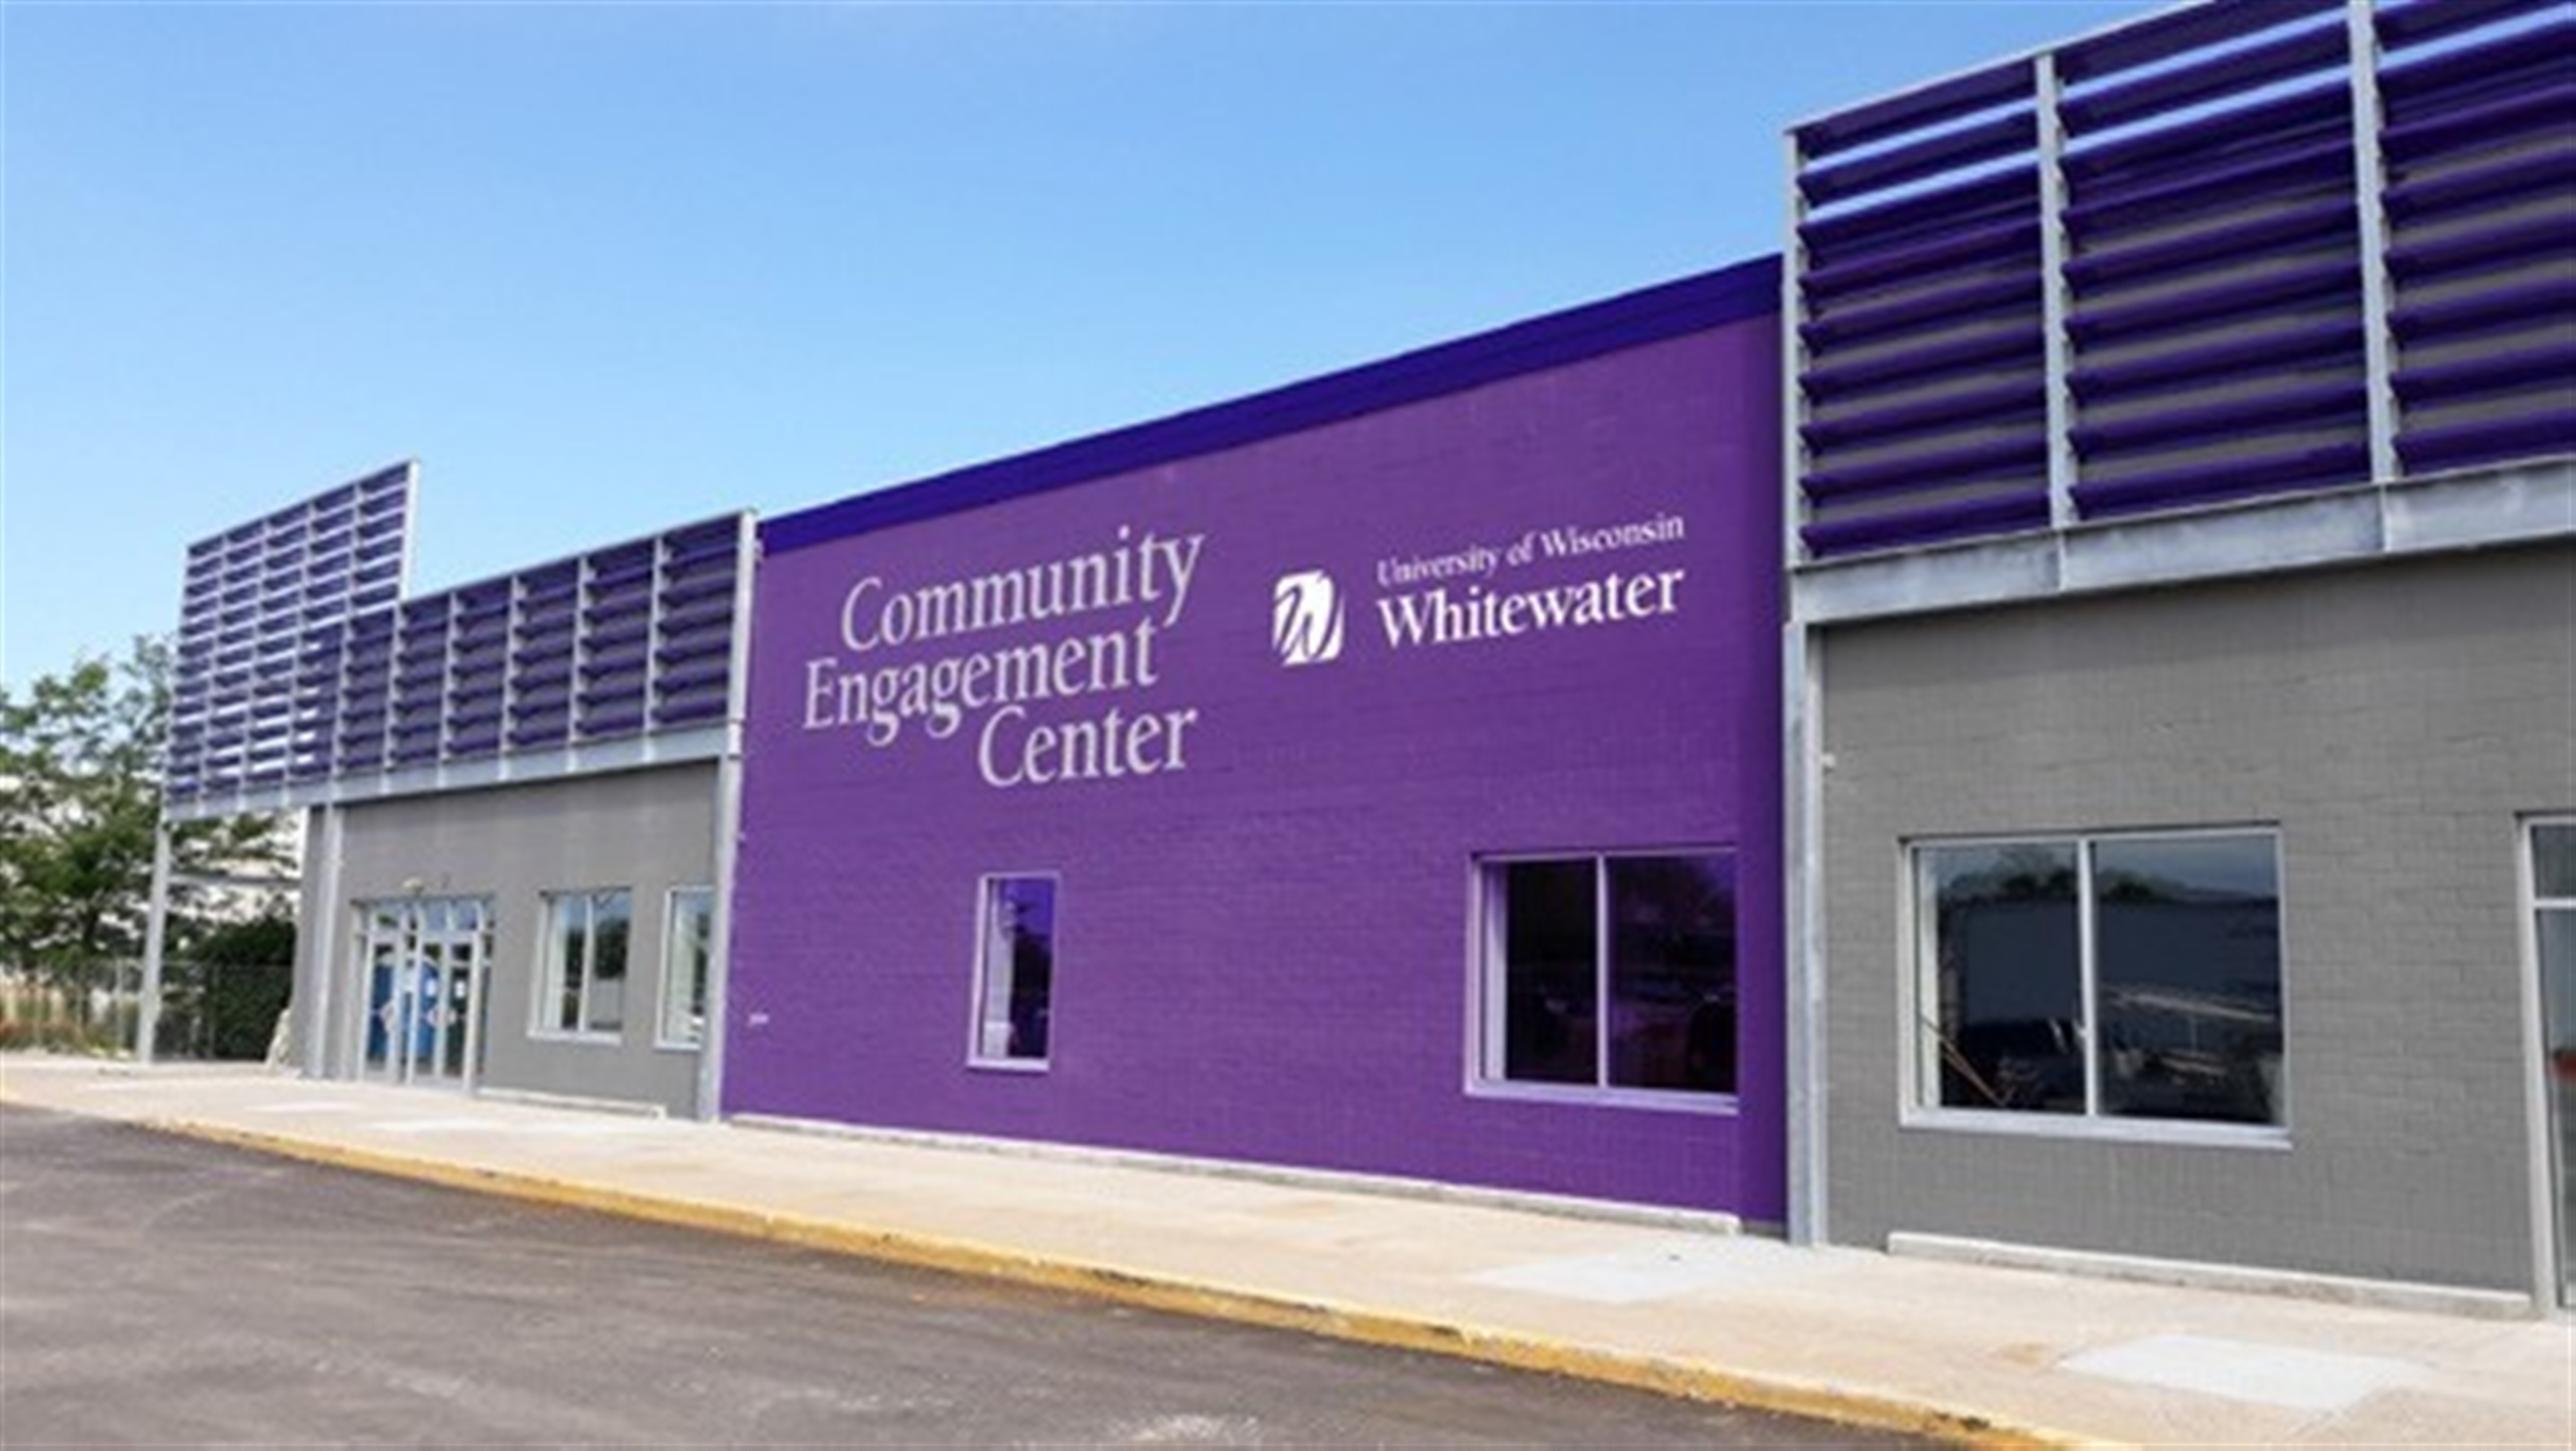 Mockup of the new Community Engagement Center